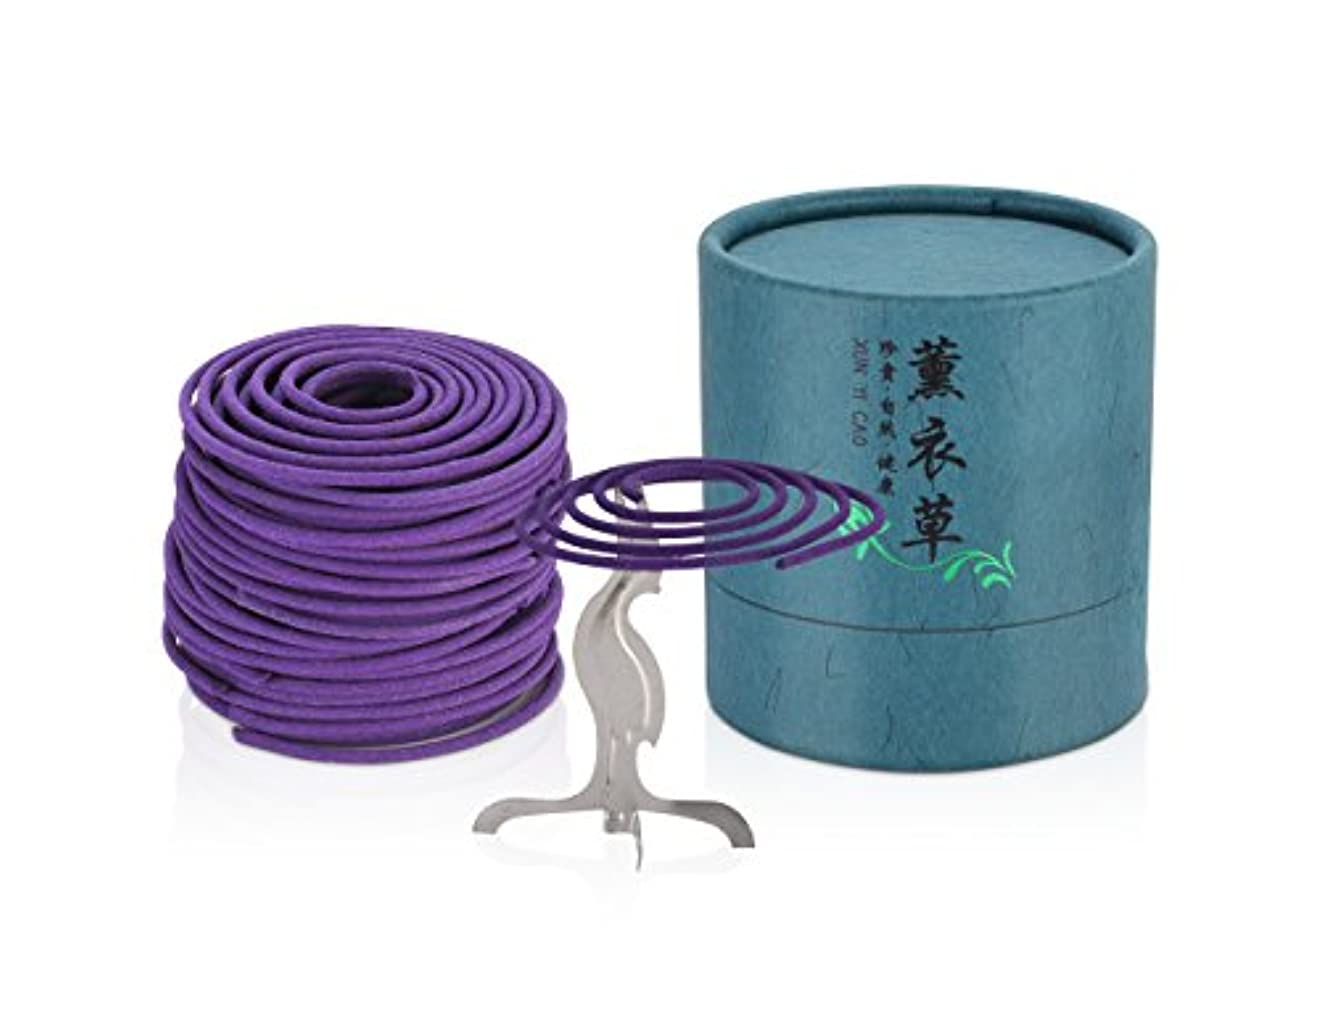 天井ノート飛行場(Lavender) - Xujia Lavender Incense Coils,Zen Buddhist Coils Incense for Burner